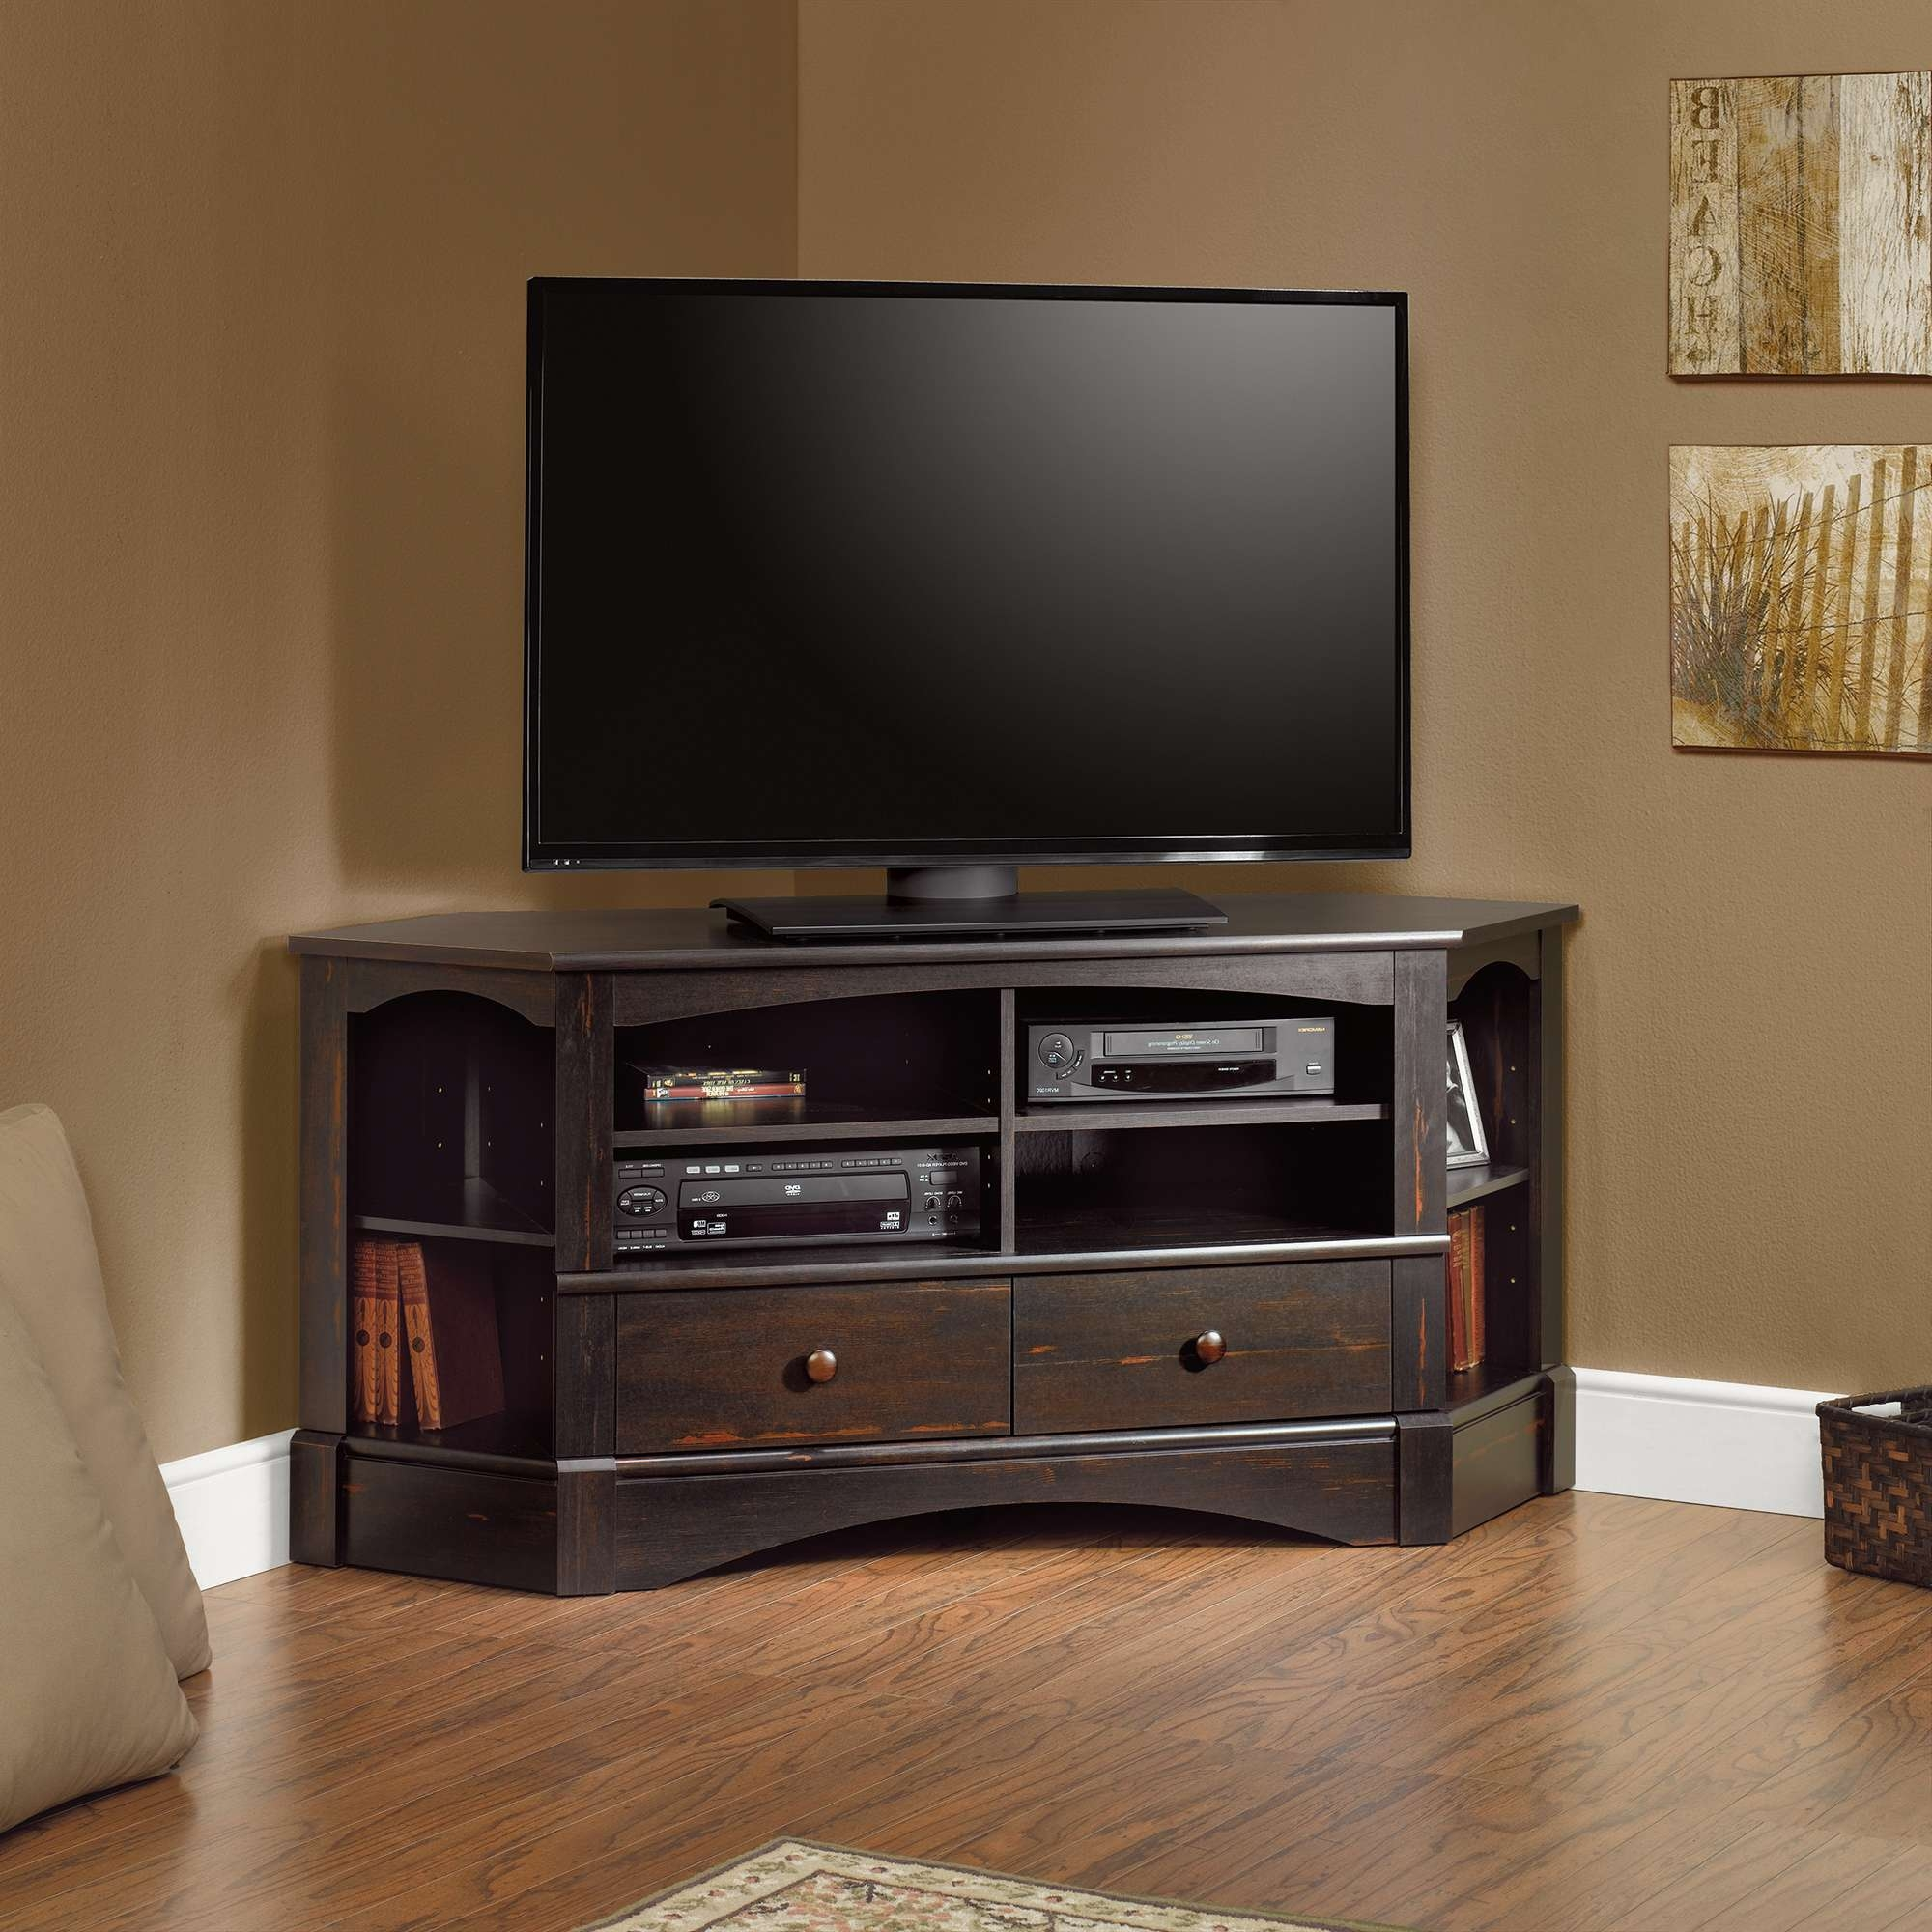 Harbor View | Corner Entertainment Credenza | 402902 | Sauder With Cornet Tv Stands (View 7 of 15)